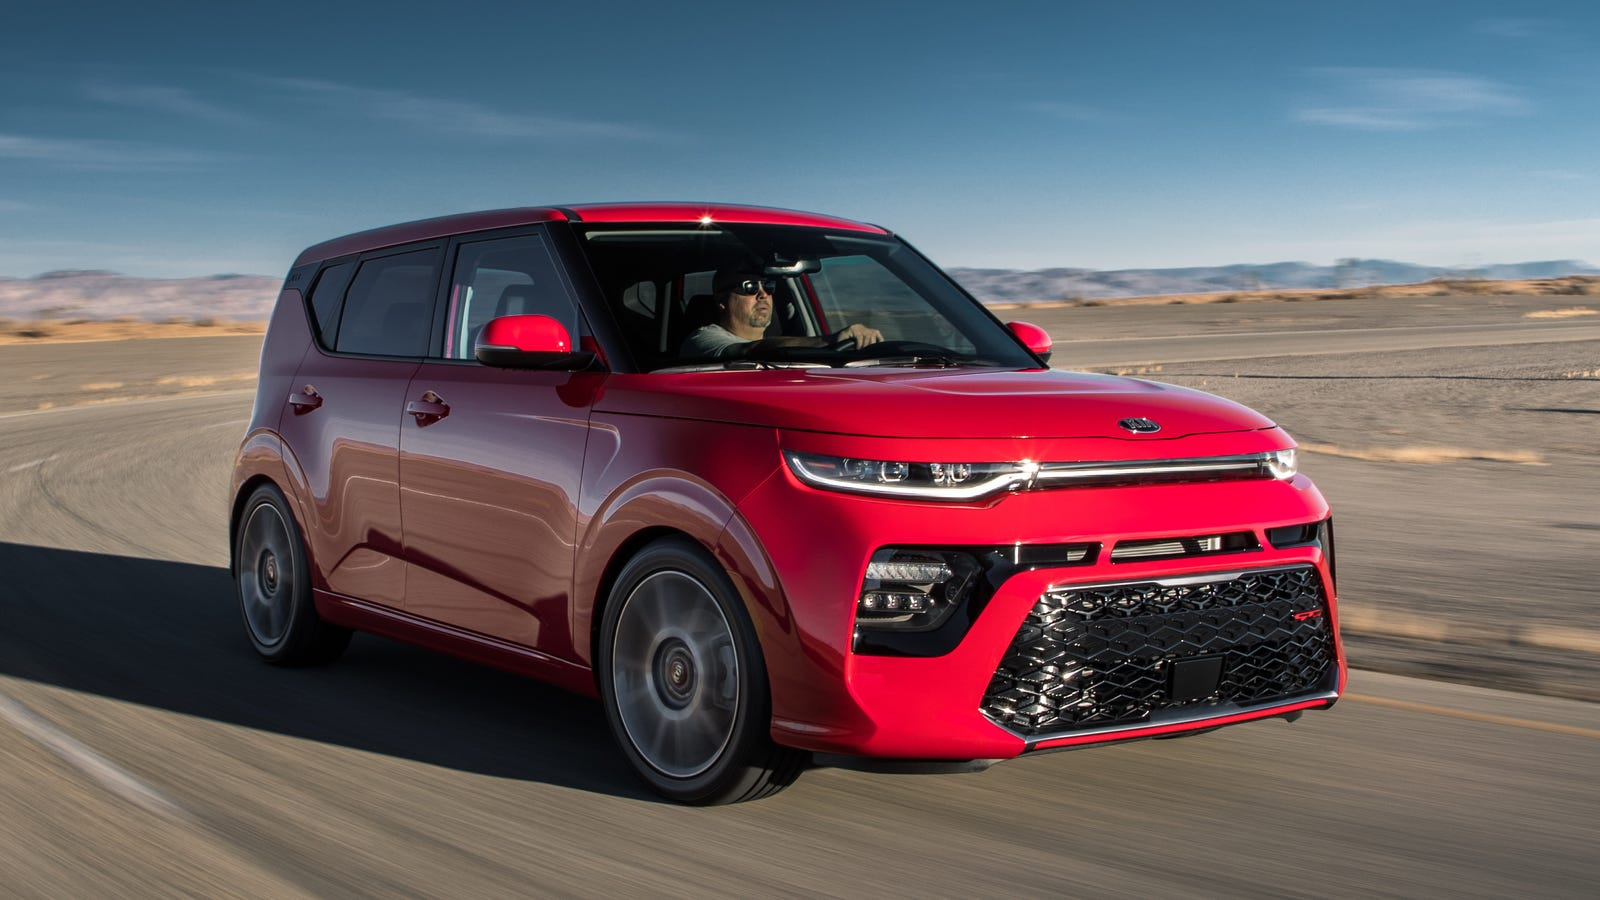 The 2020 Kia Soul Is the Small Crossover for People With Taste